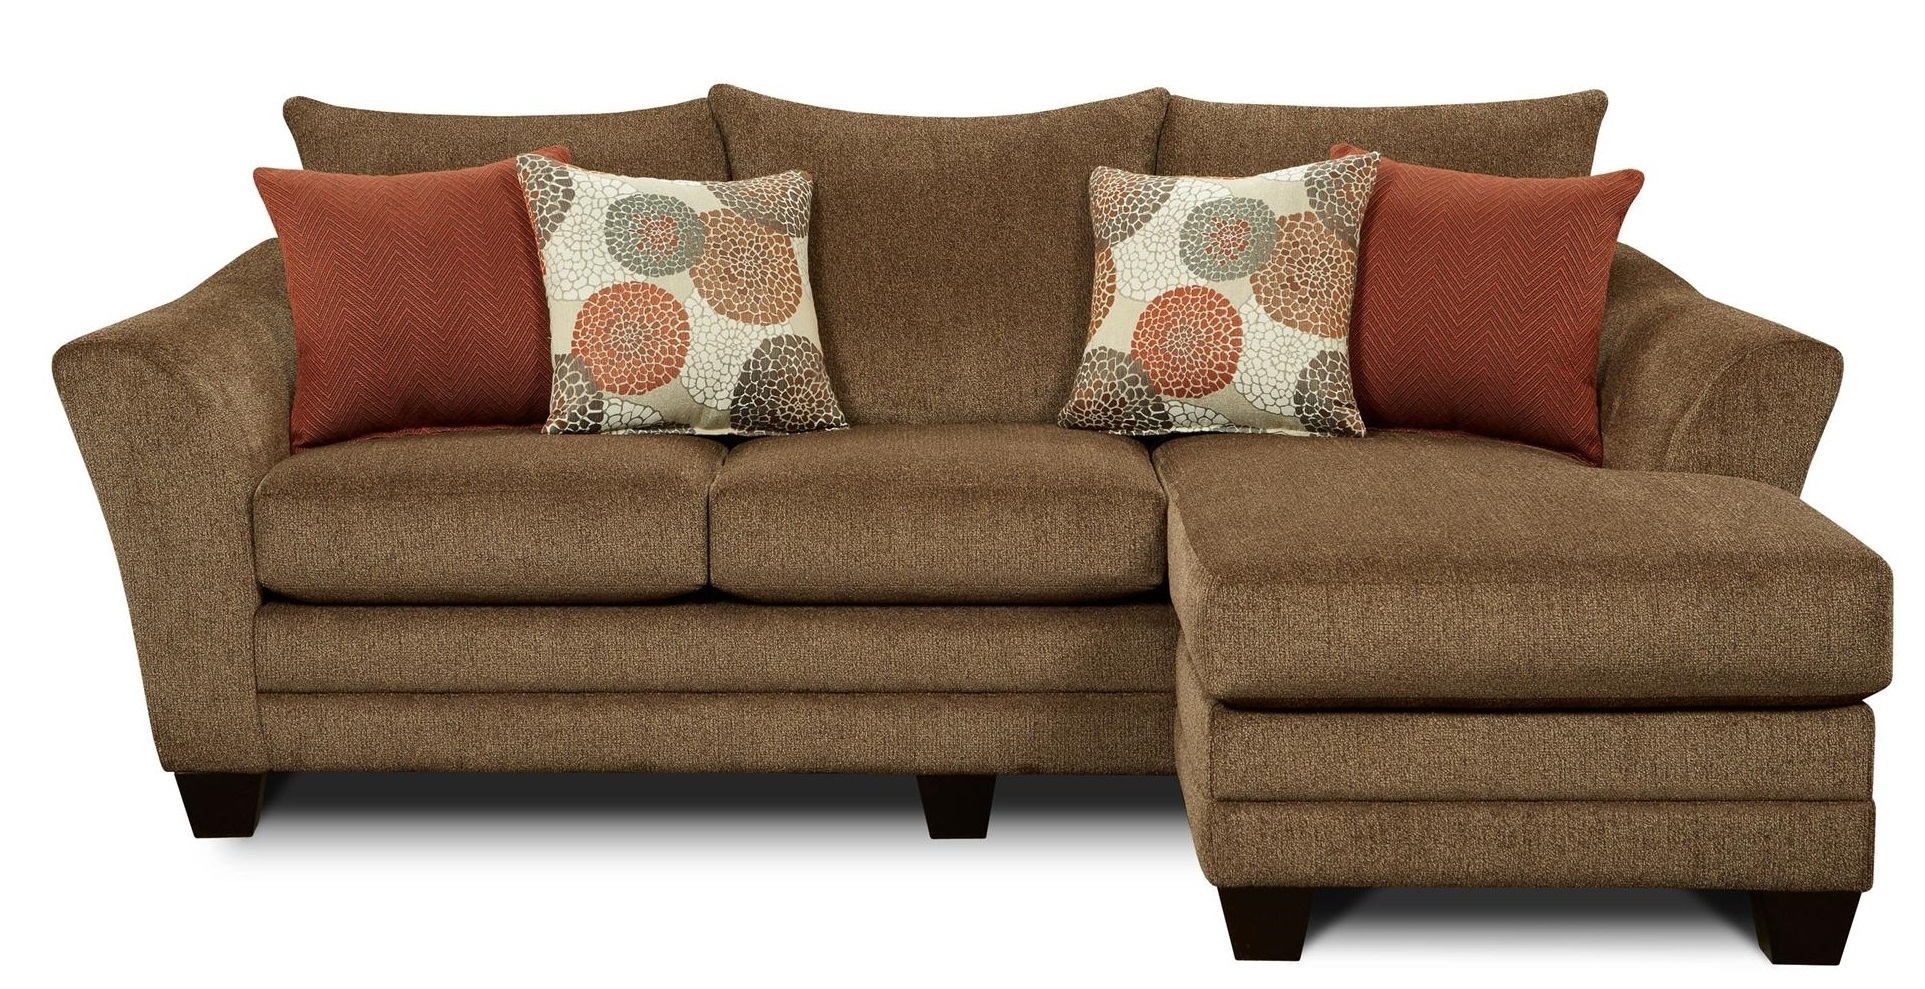 2019 Latest Kansas City Sectional Sofas Sofa Ideas